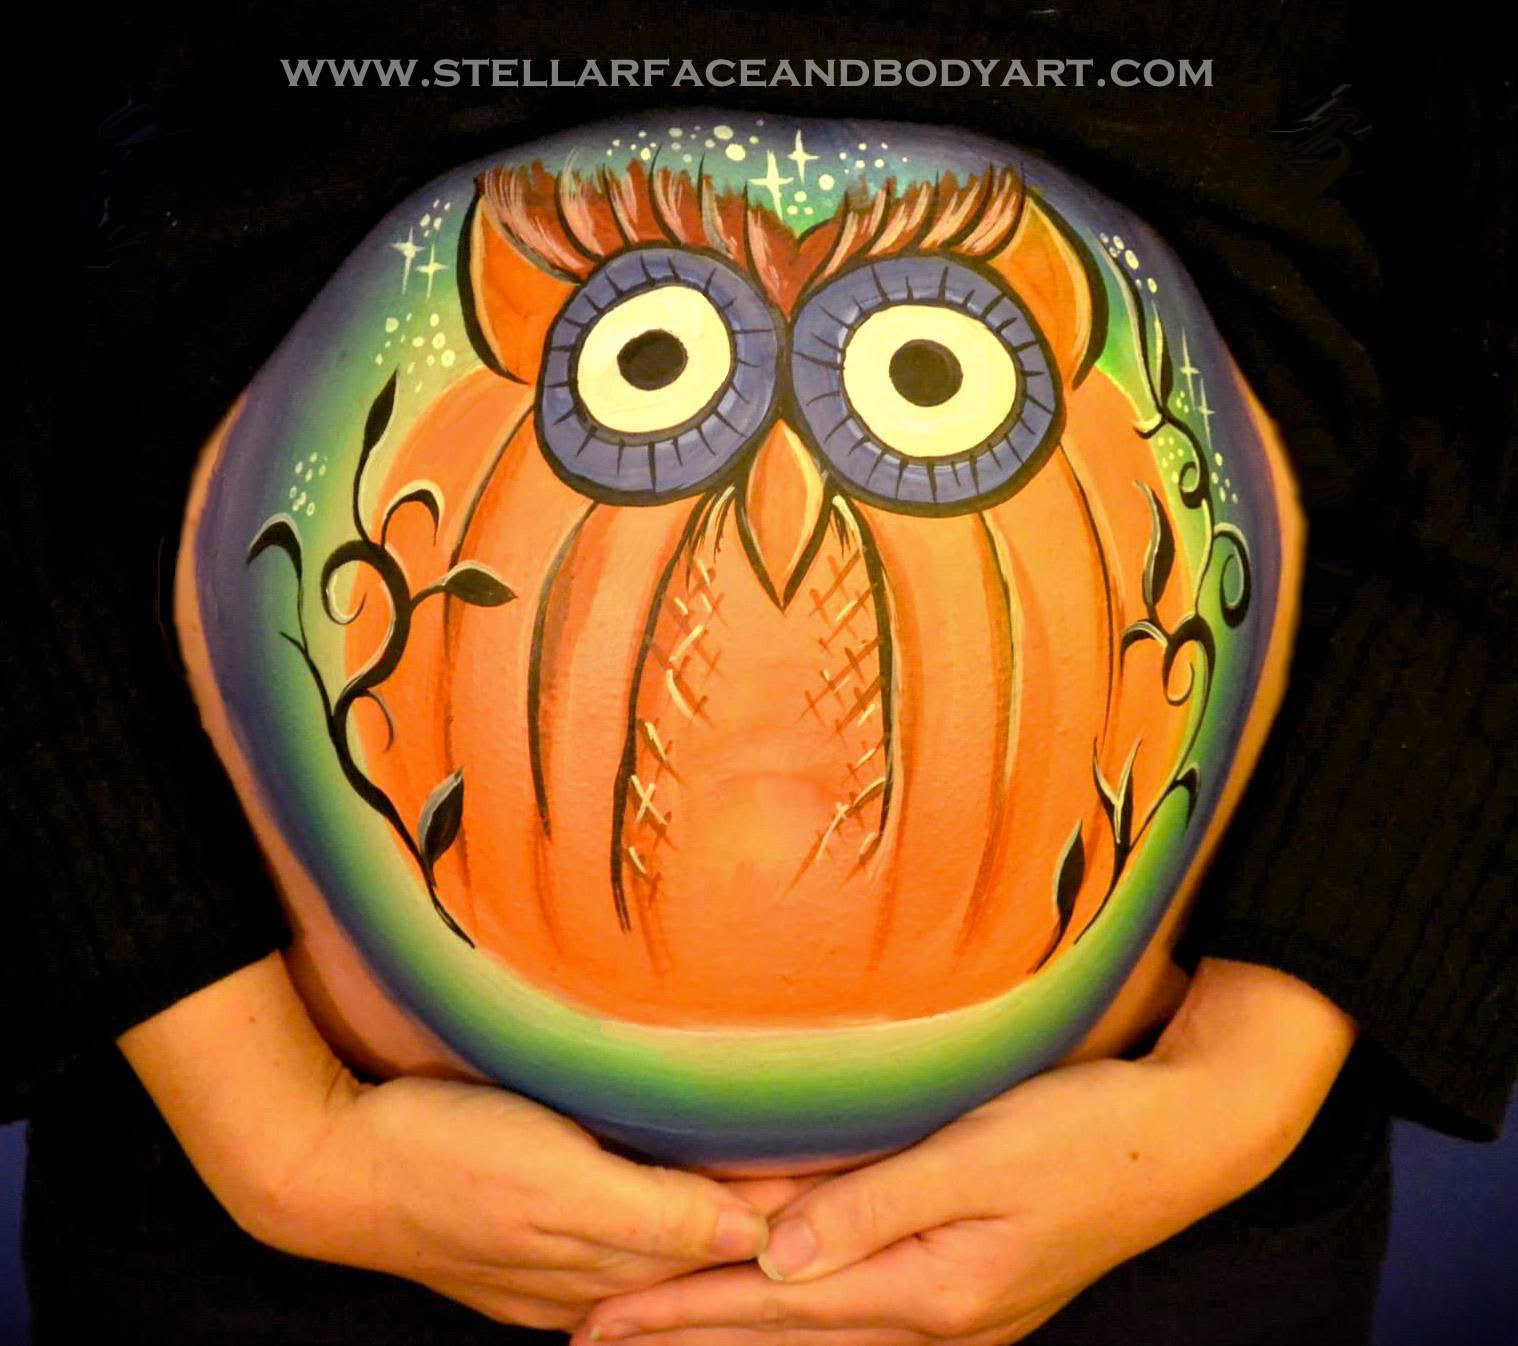 A belly painting of an orange and purple owl.